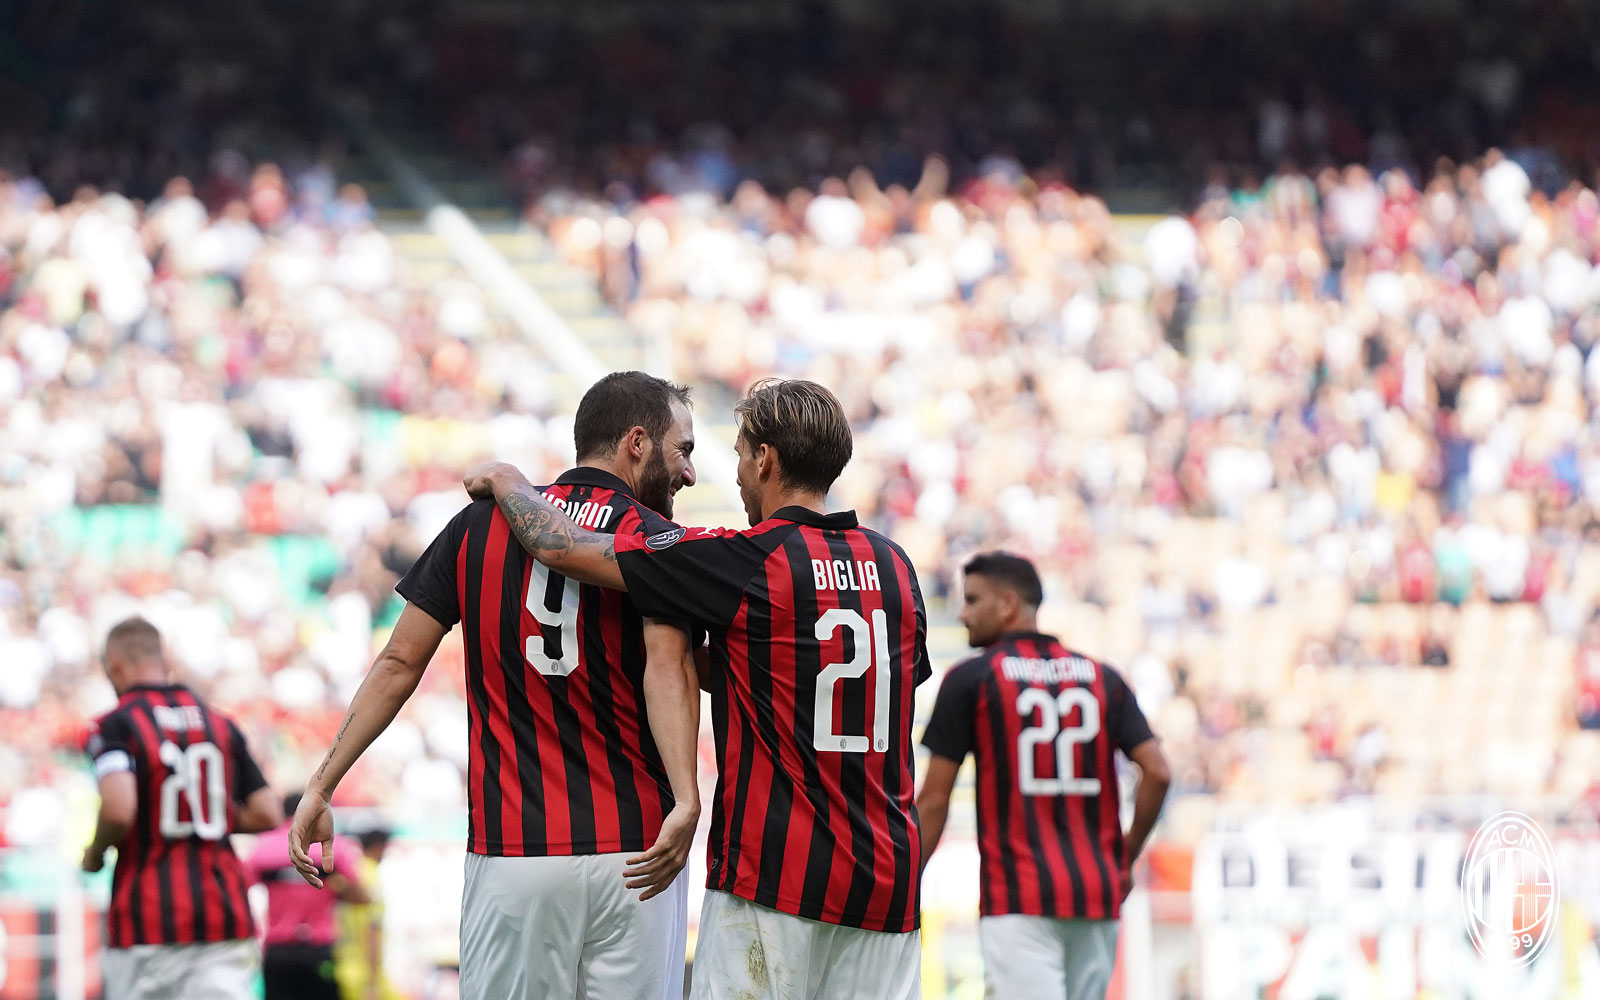 Gonzalo Higuain and Lucas Biglia celebrating during Milan-Chievo at Stadio San Siro on October 7, 2018. (@acmilan.com)